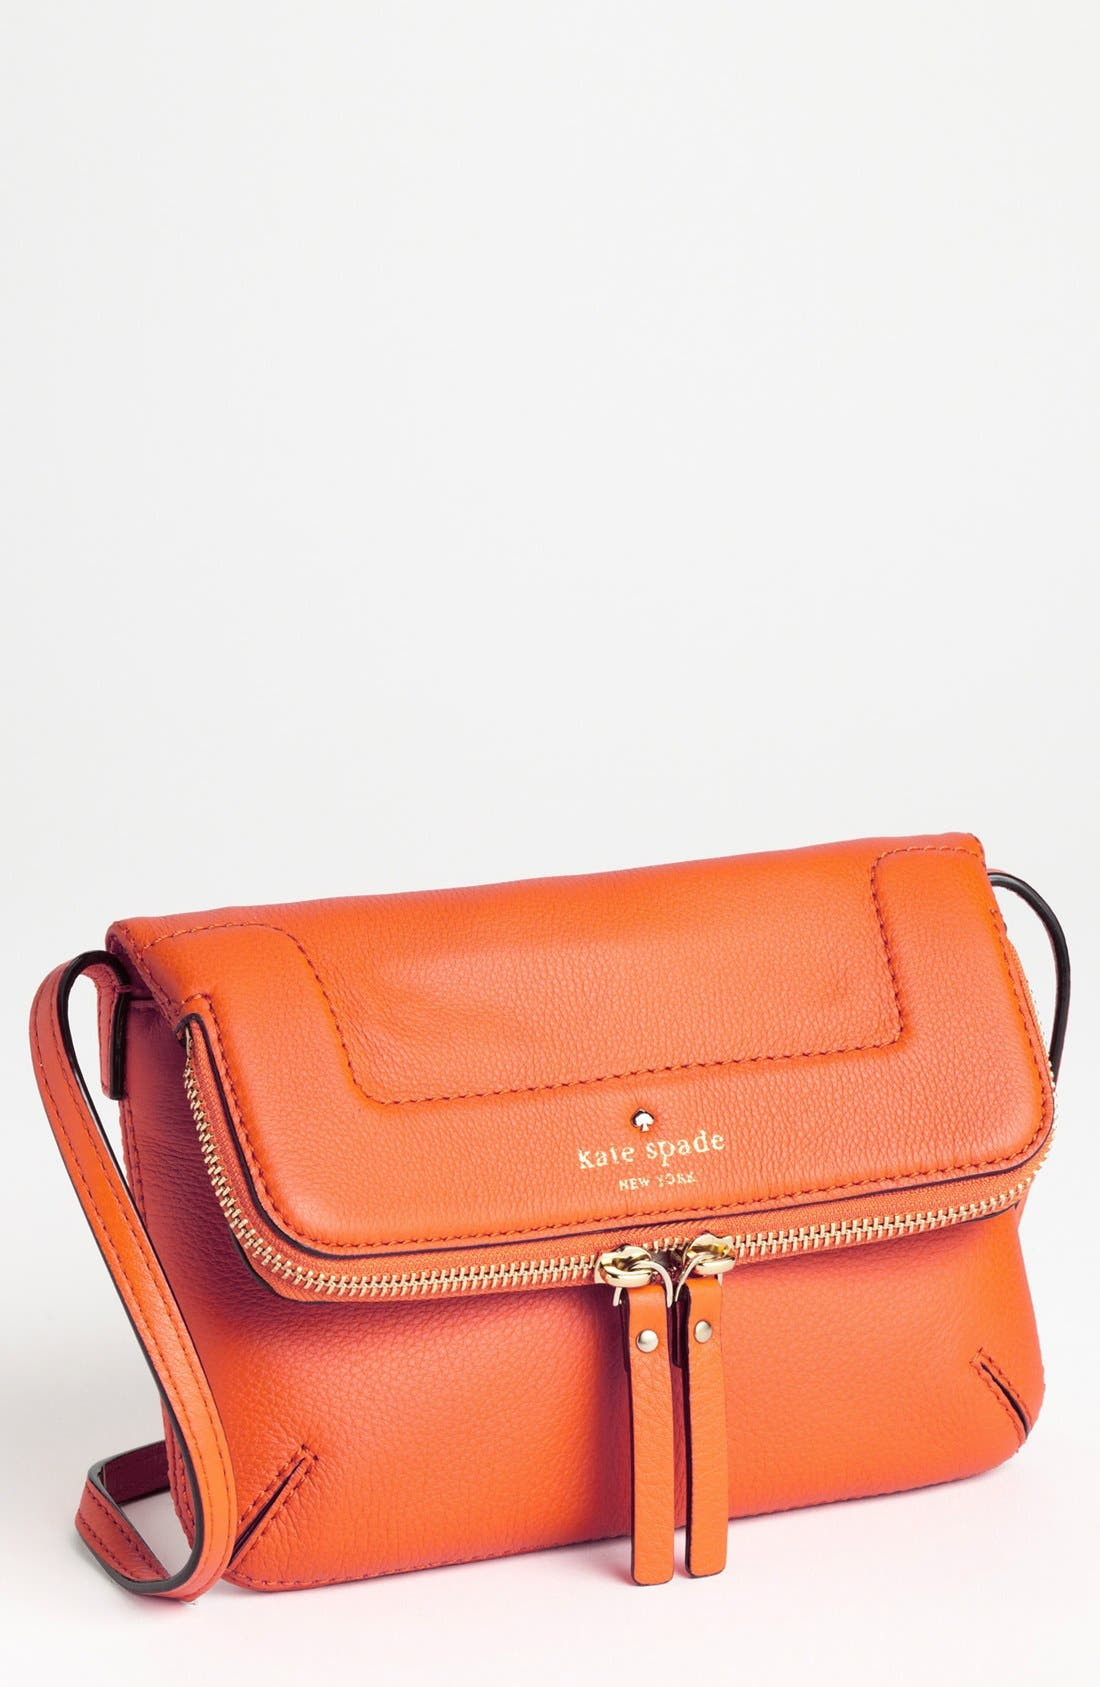 Alternate Image 1 Selected - kate spade new york 'mansfield - mariana' crossbody bag (Special Purchase)